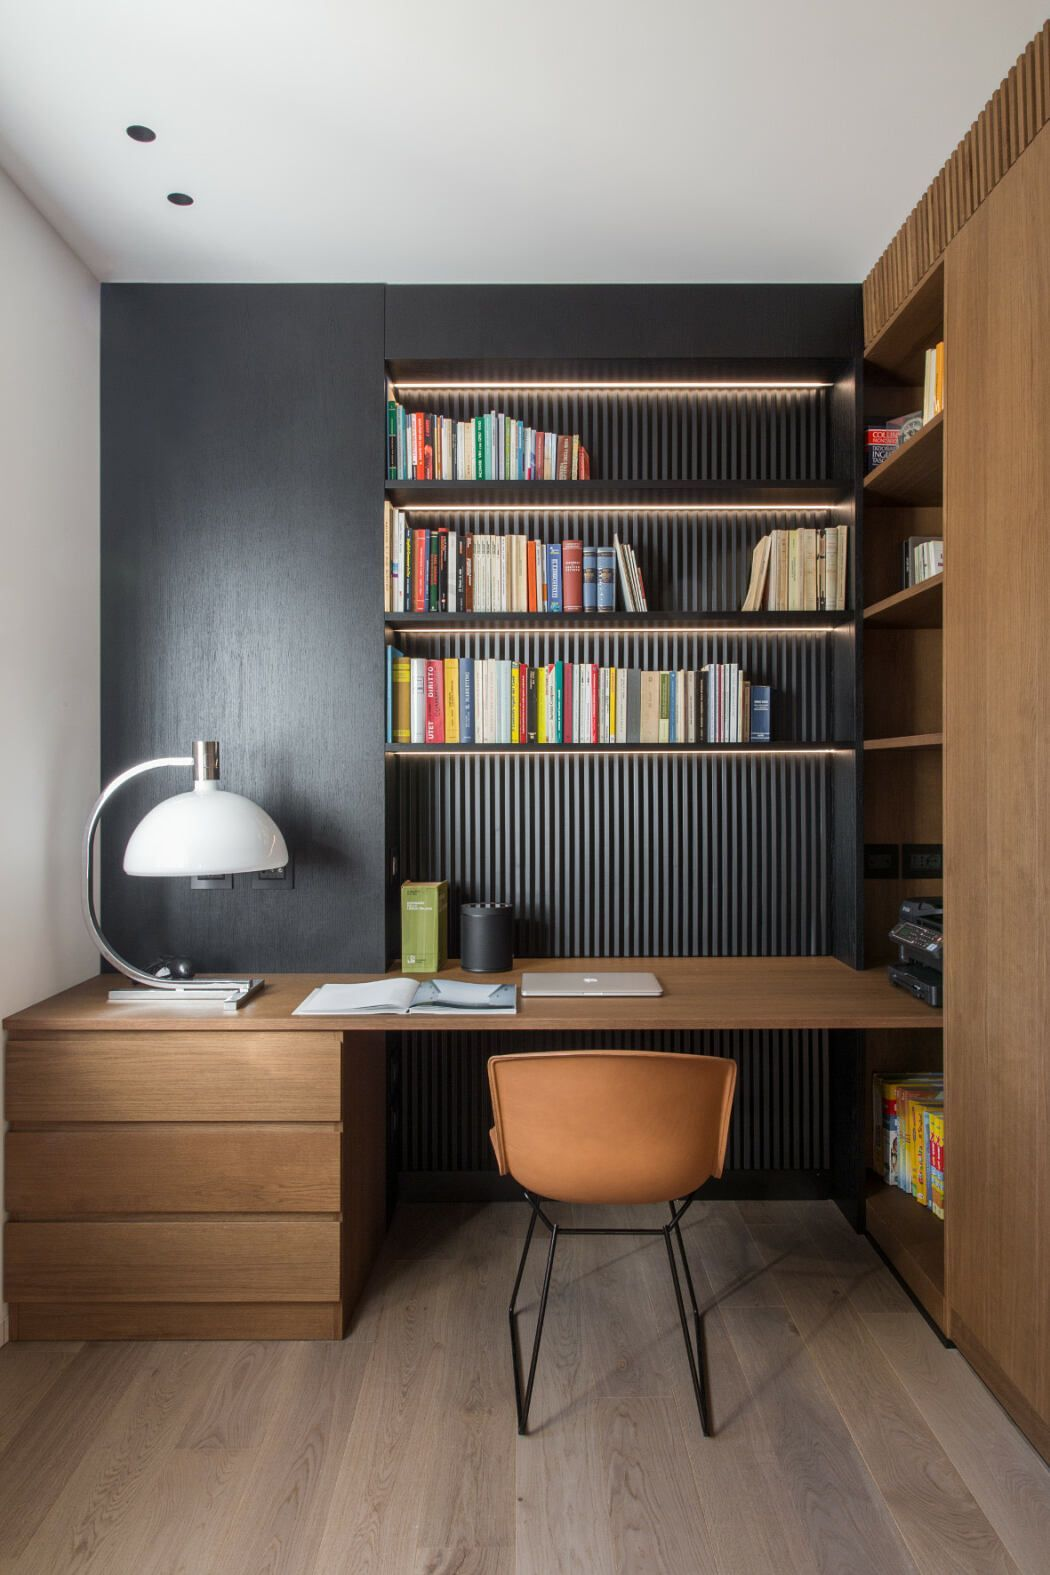 7 Amazing Home Office Ideas Will Make You Want To Work Small Home Offices Home Office Design Home Office Furniture